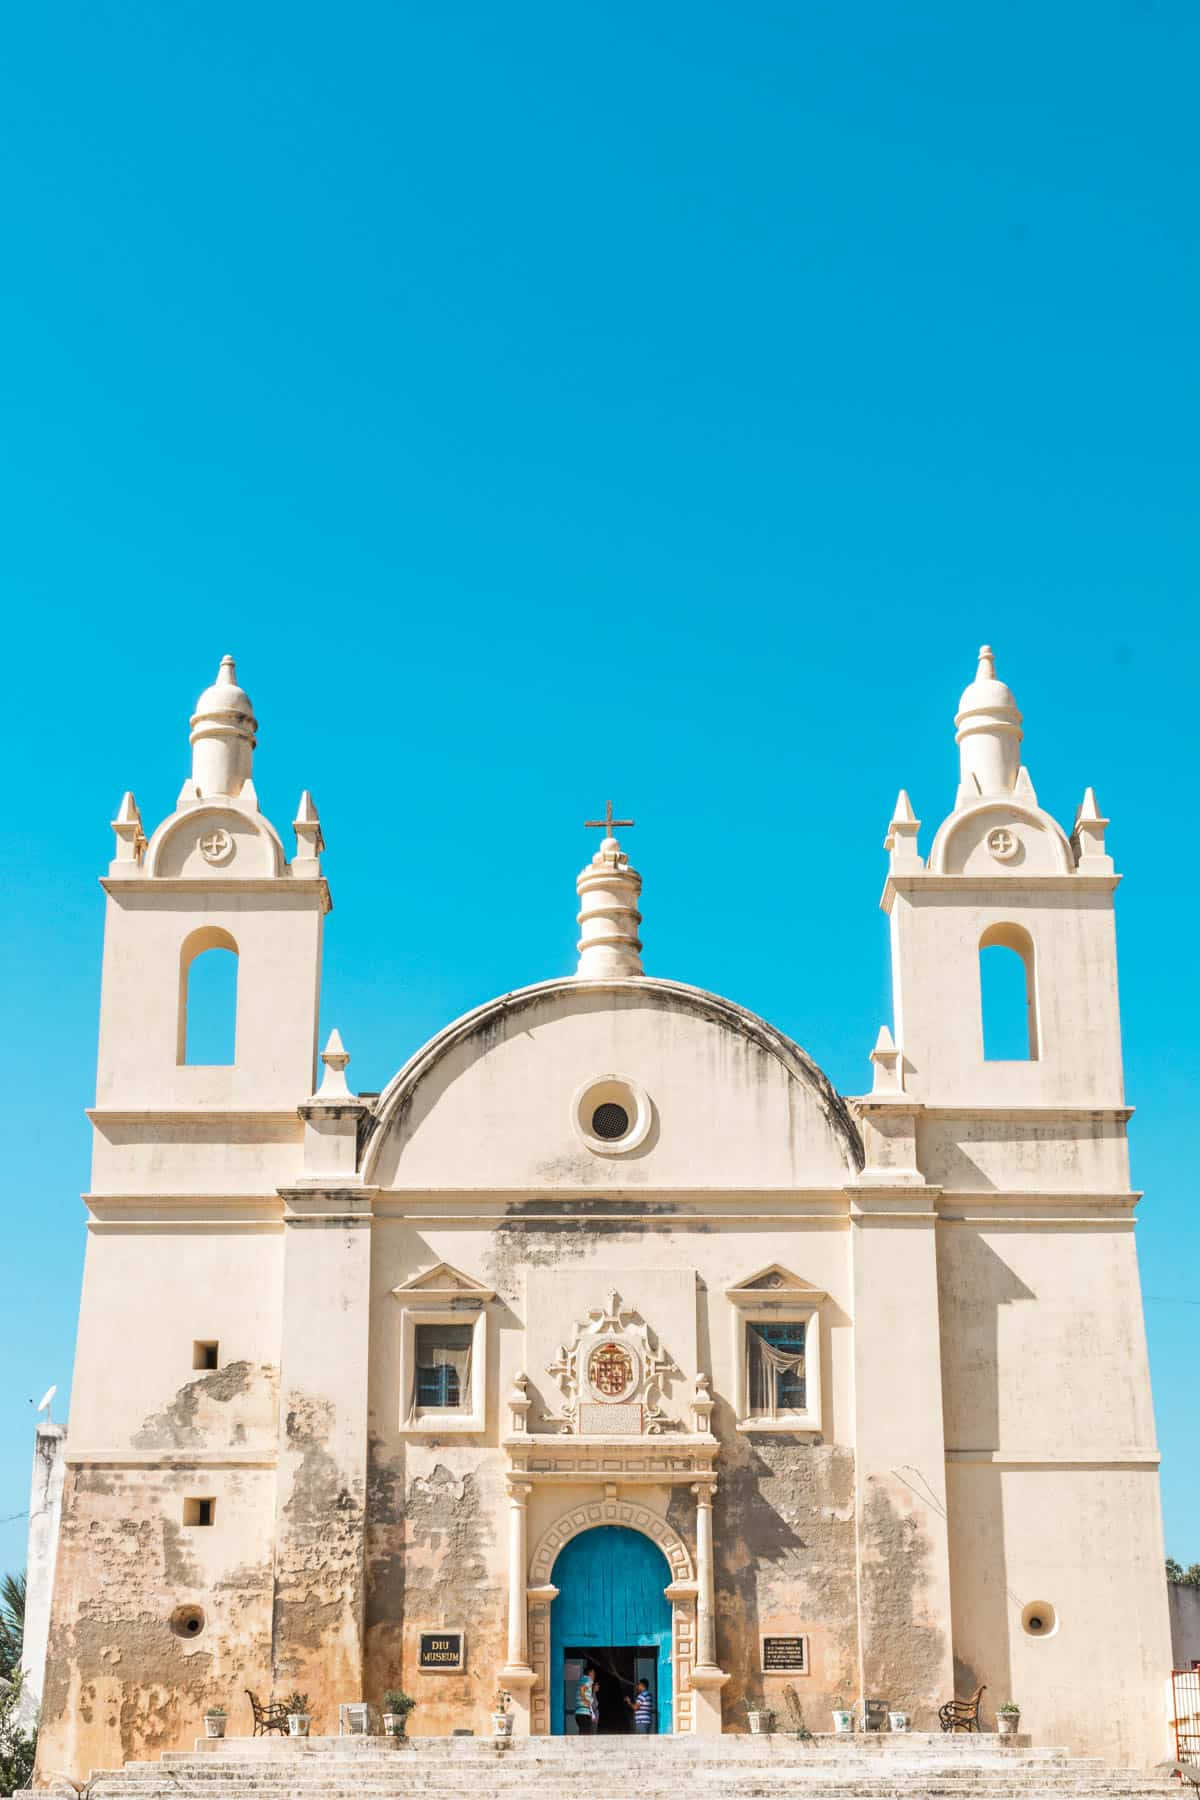 Blue skies over a Portuguese church on Diu island, India. A great off the beaten track destination in India if you're looking for a bit of comfortable rest and relaxation, and the perfect Goa alternative.